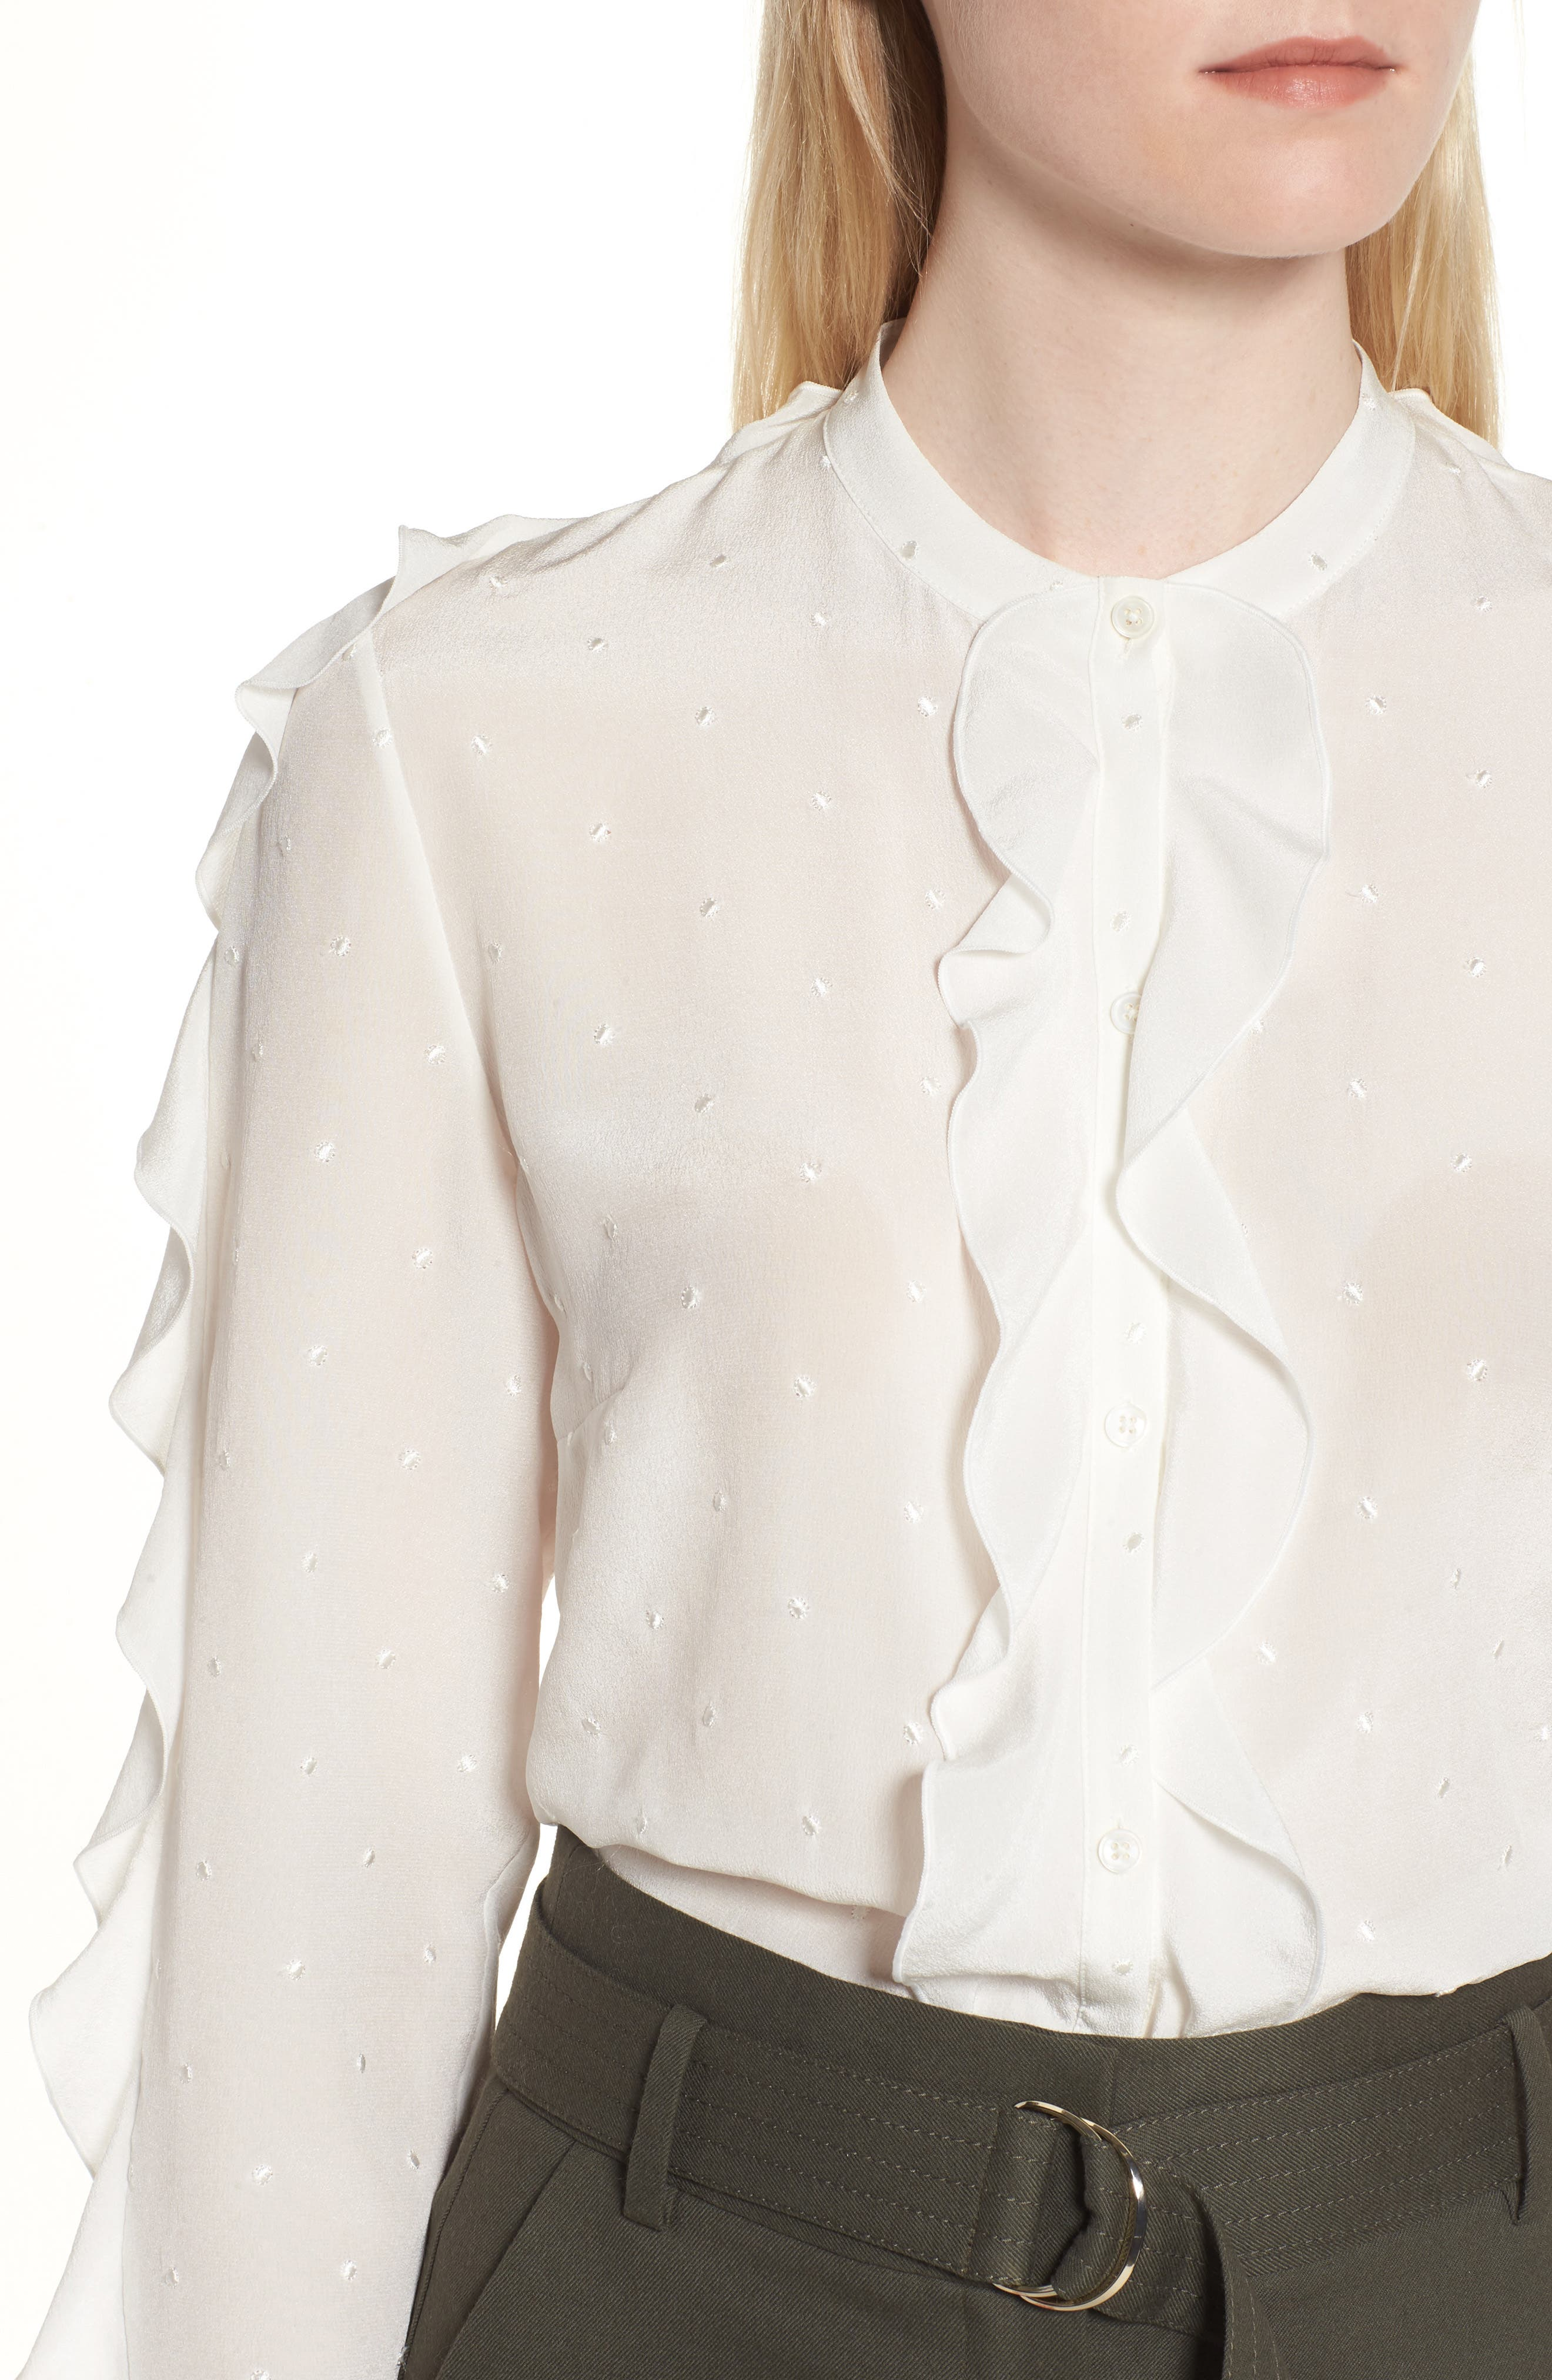 Ruffle Detail Embroidered Silk Blouse,                             Alternate thumbnail 4, color,                             900